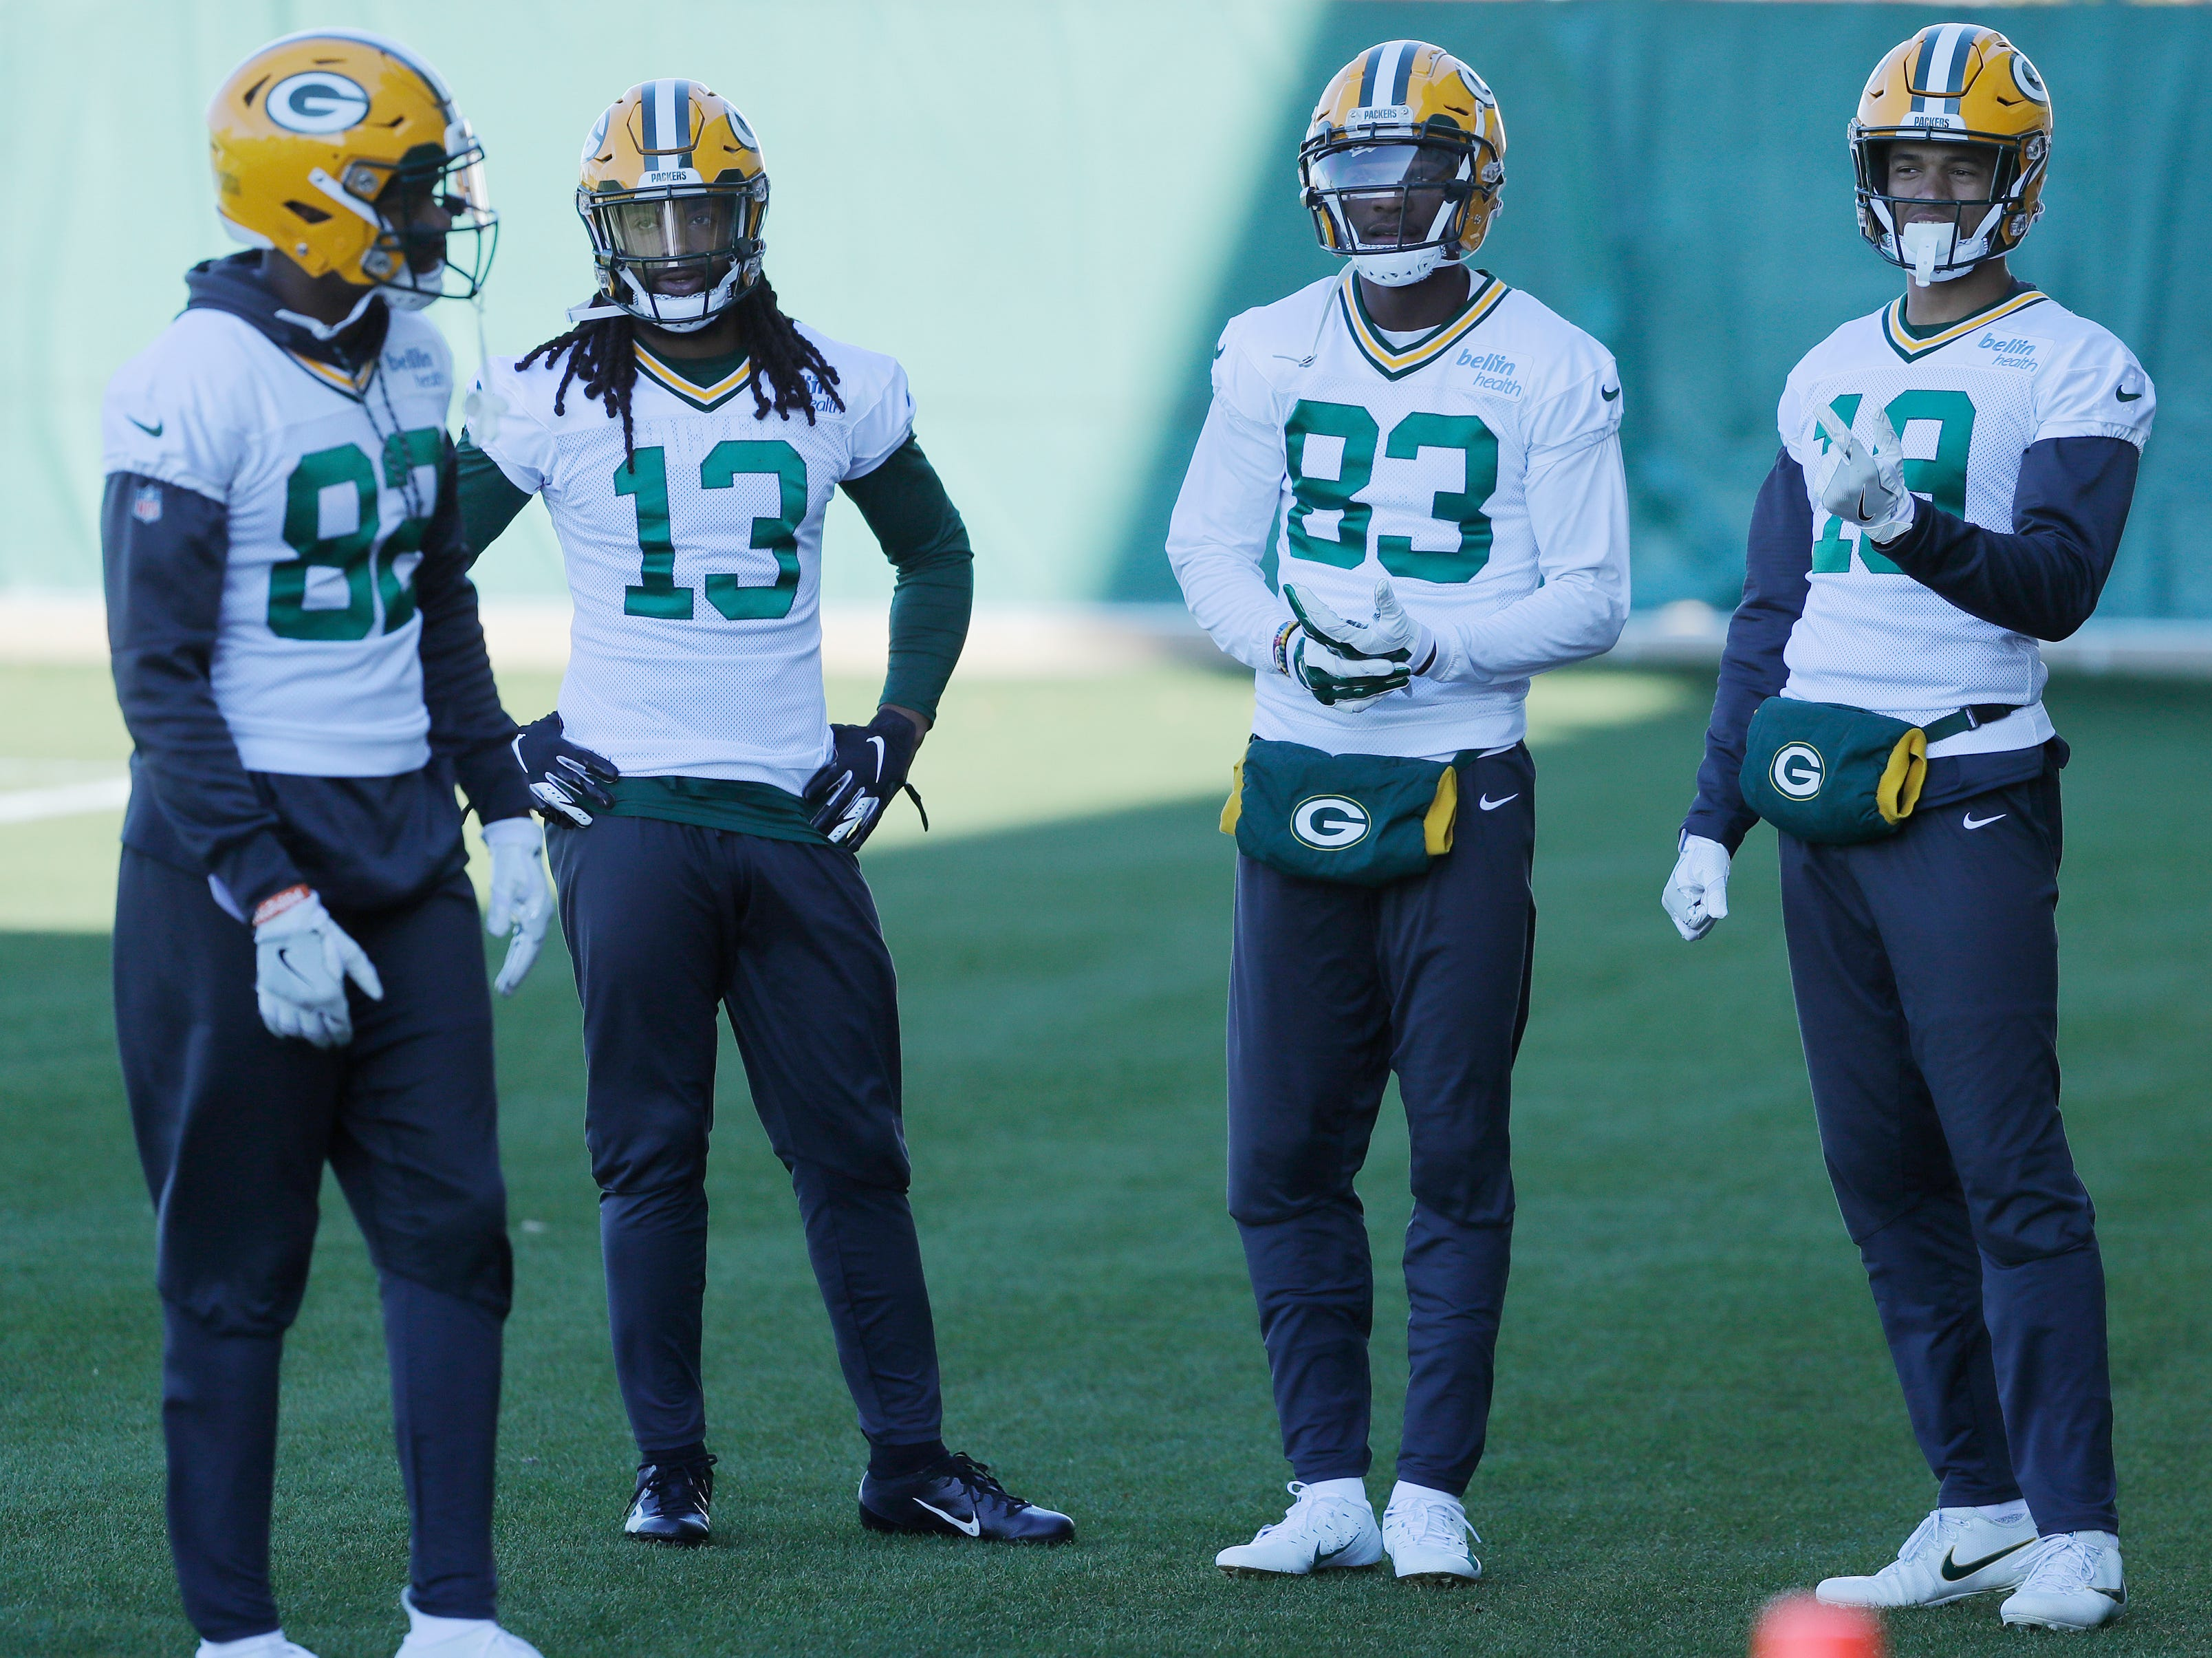 Green Bay Packers wide receivers J'Mon Moore (82), Keon Hatcher (13), wide receiver Marquez Valdes-Scantling (83), and wide receiver Equanimeous St. Brown (19) talk during practice at Ray Nitschke Field on Wednesday, October 31, 2018 in Ashwaubenon, Wis.